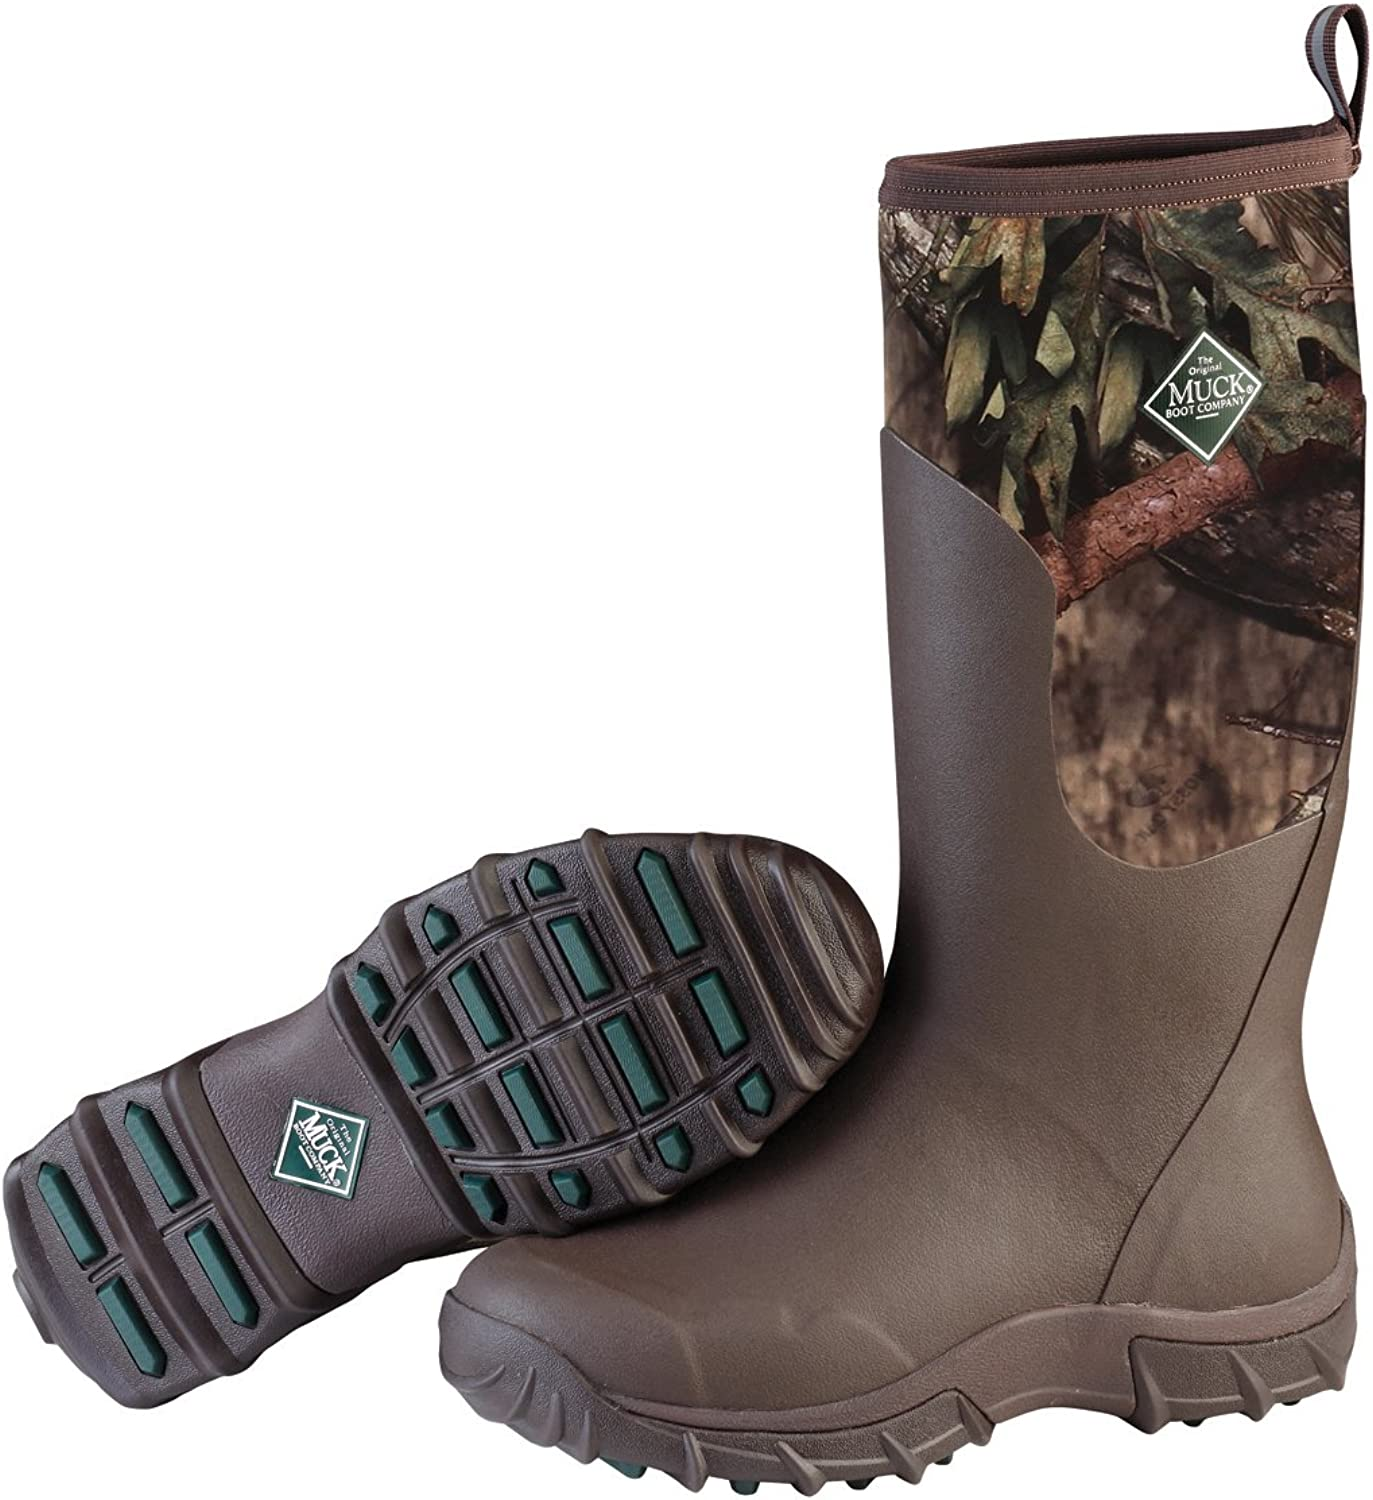 Muck Boot Mens Woody Sport Ii Hunting shoes